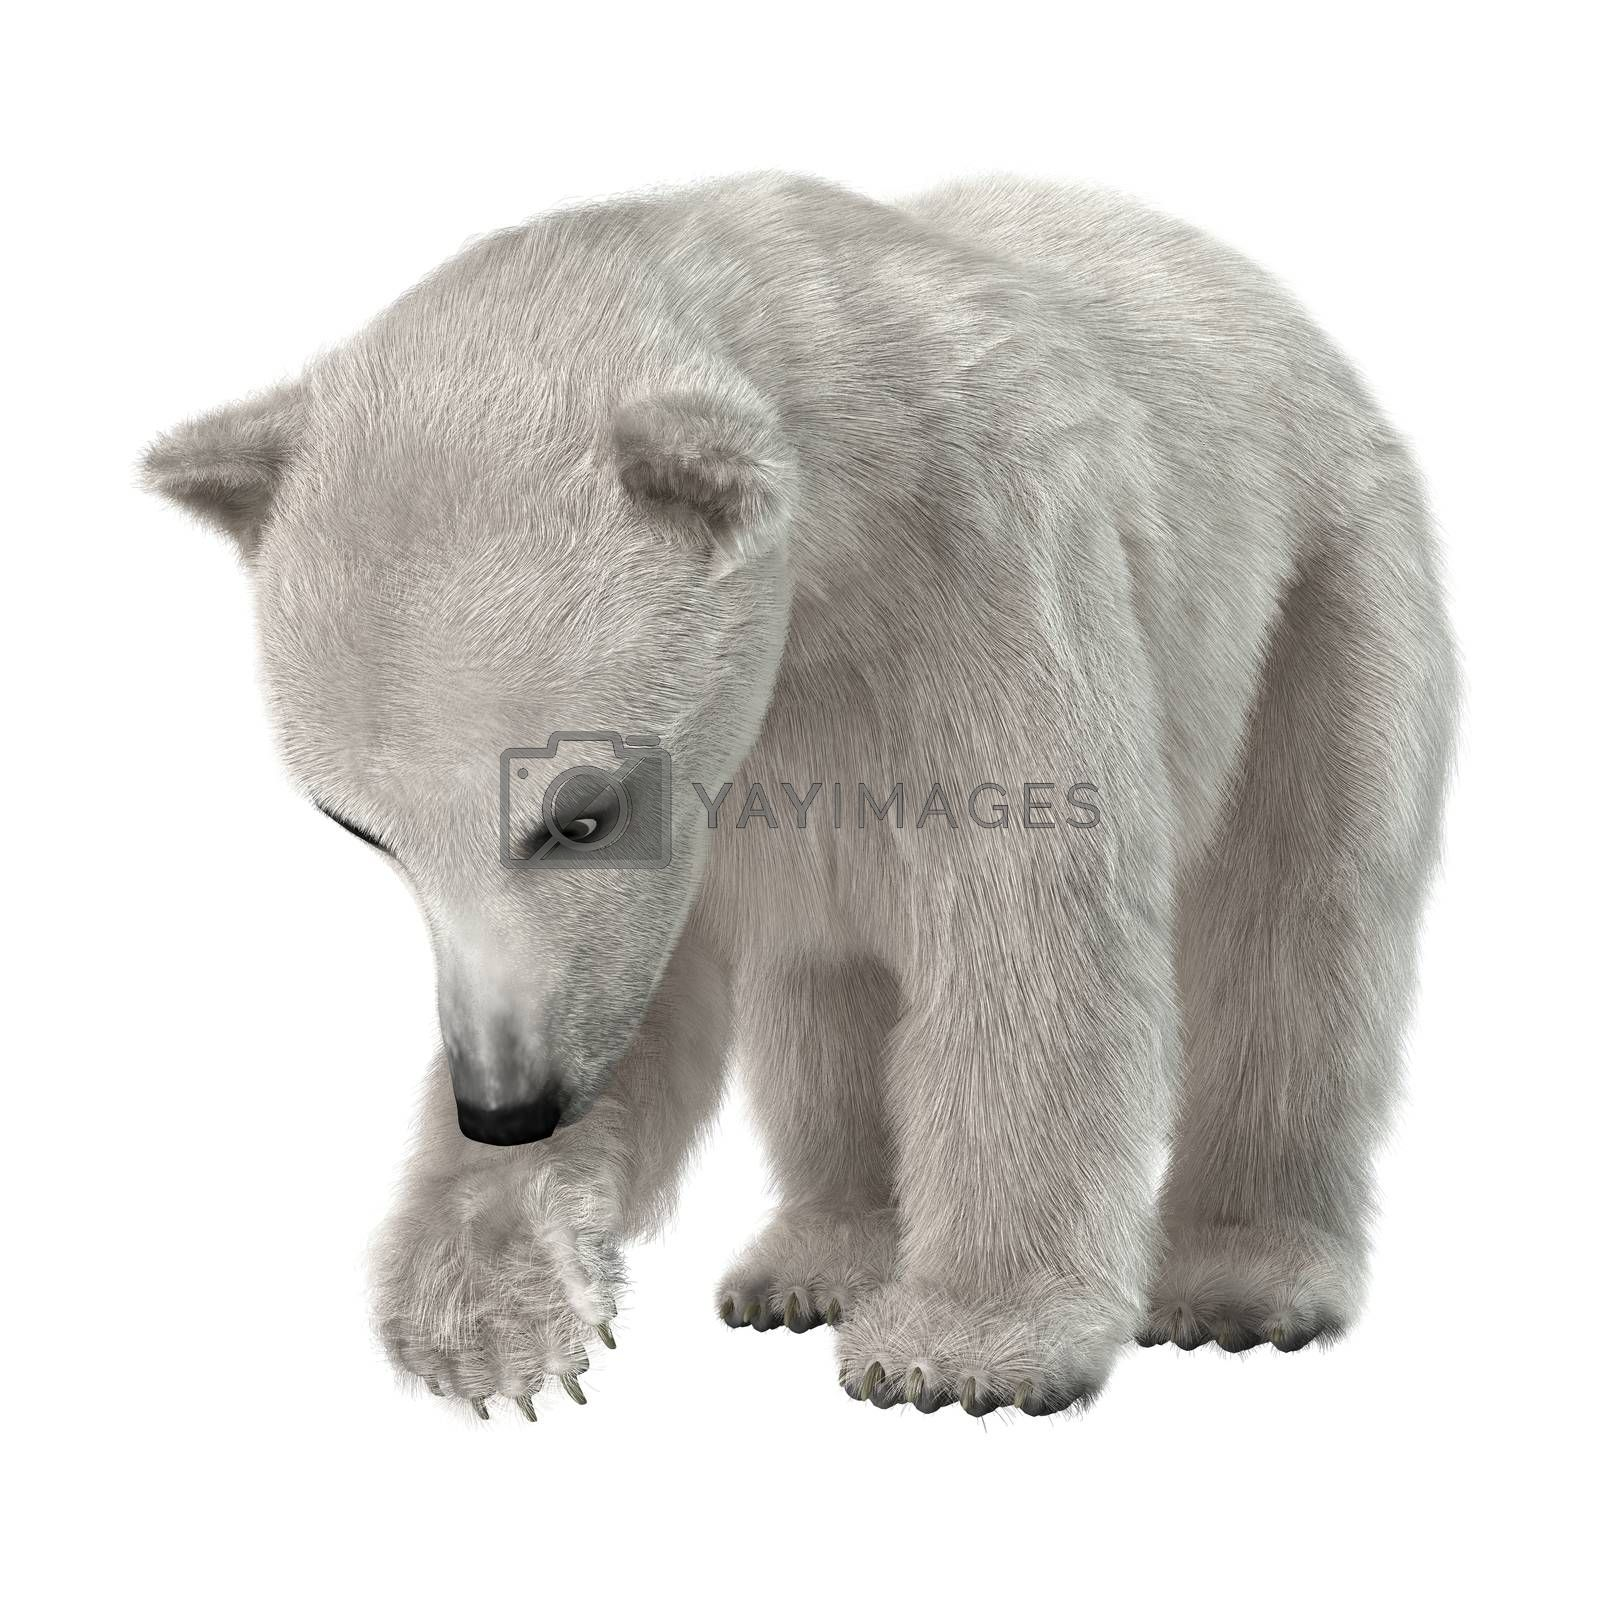 3D digital render of a polar bear cub isolated on white background